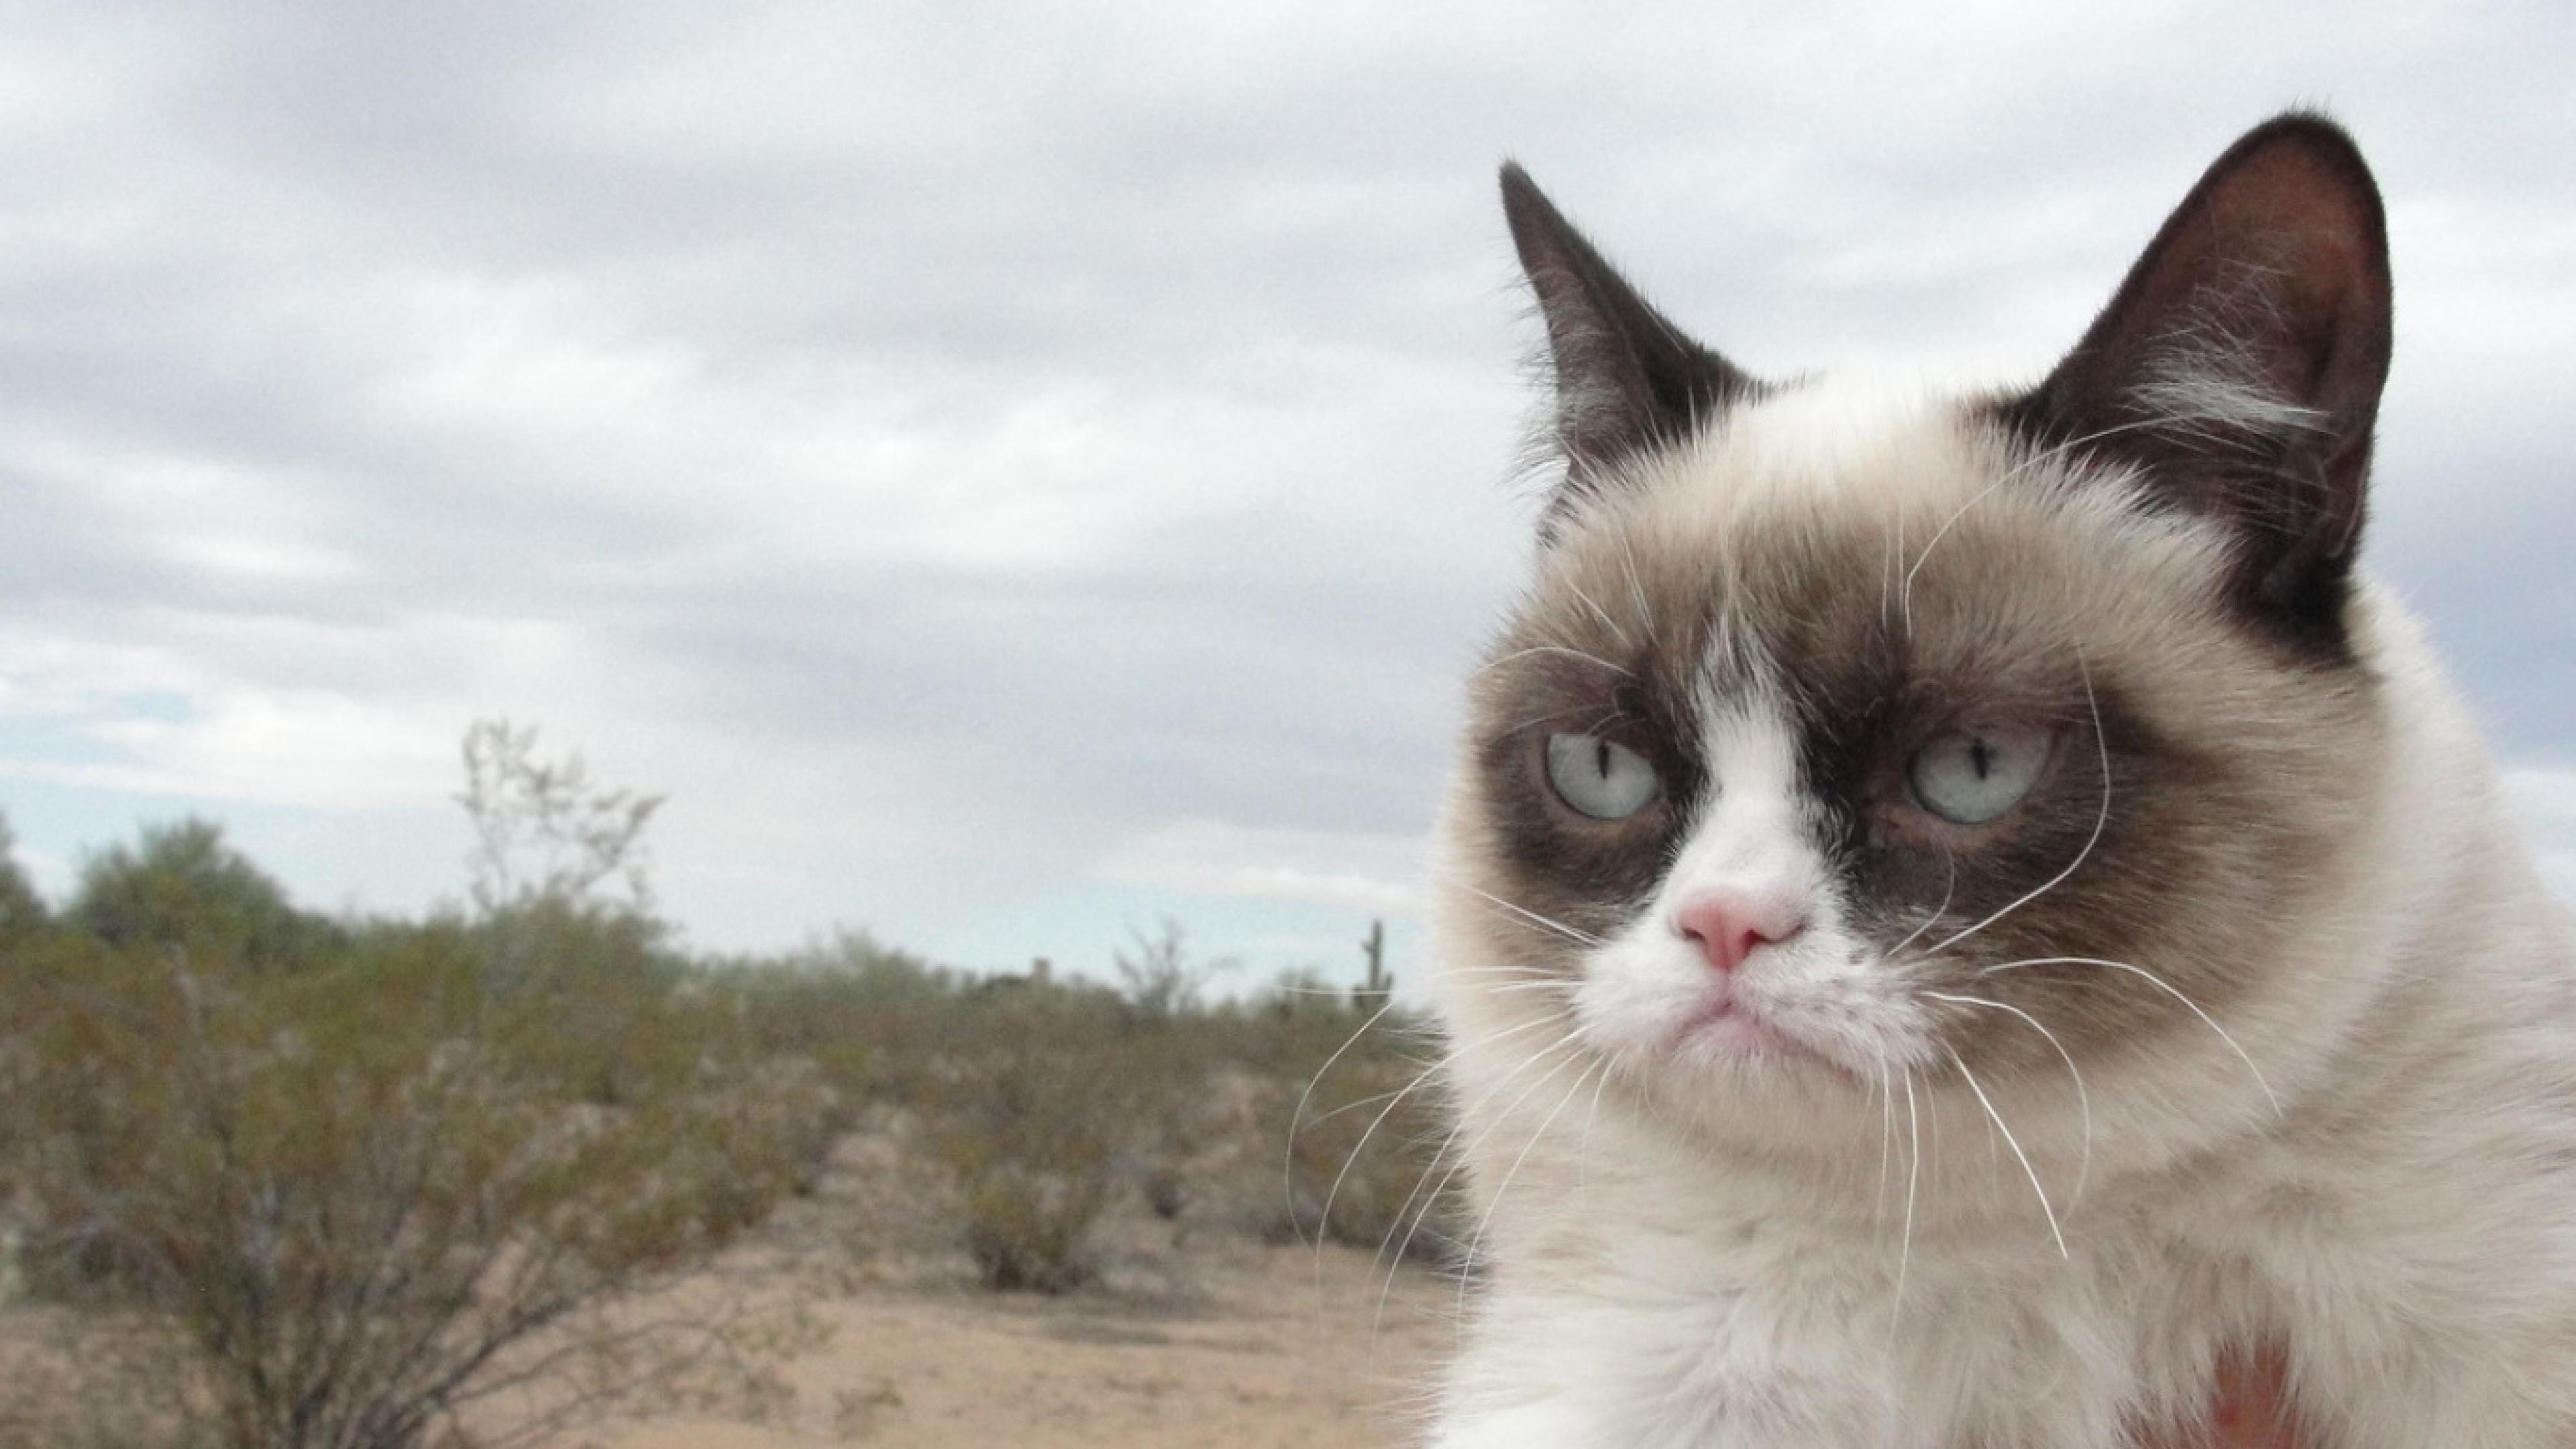 grumpy cat hd wallpapers - photo #6